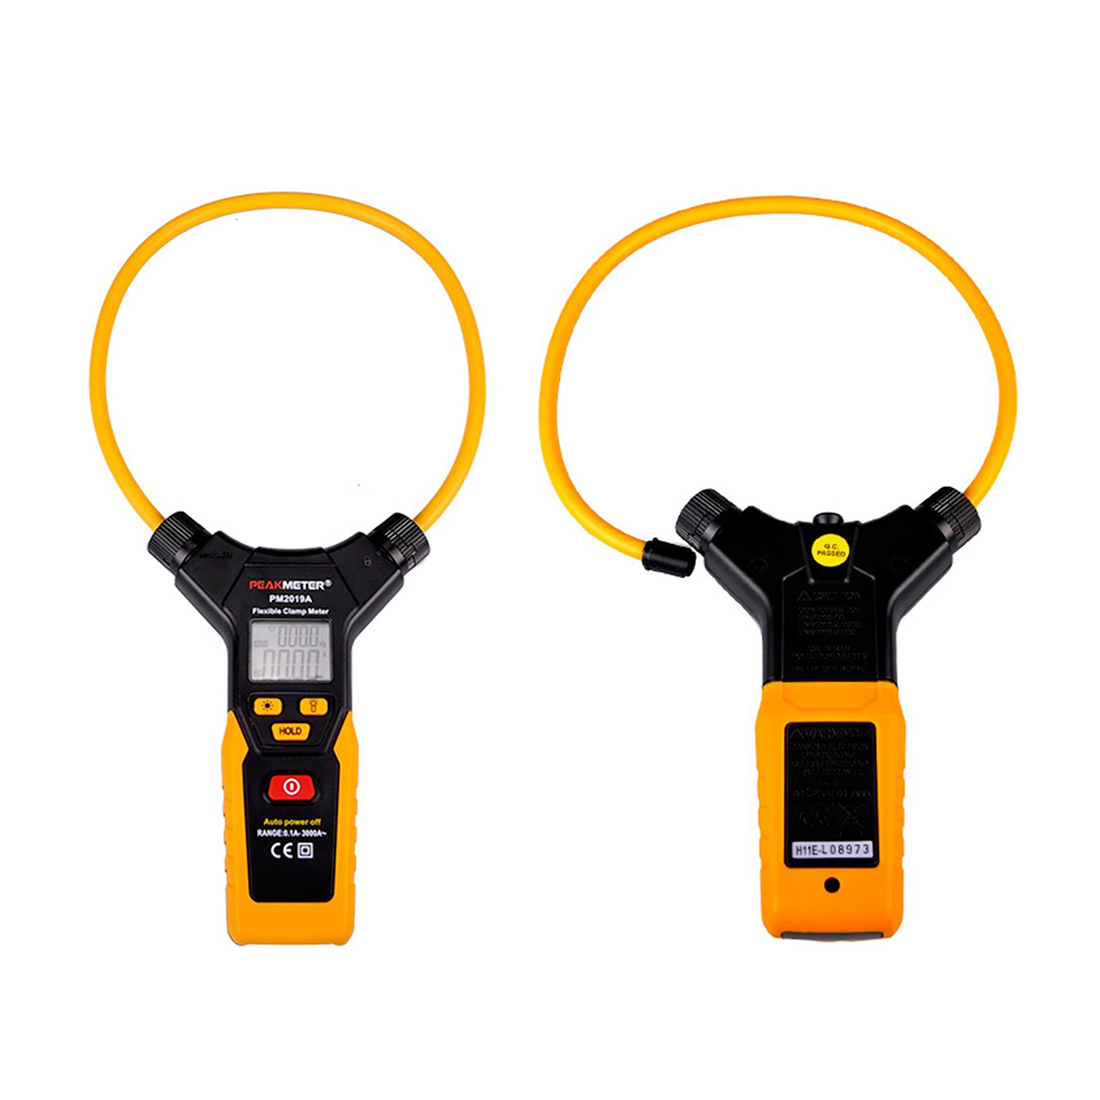 New Style PEAKMETER PM2019A AC Digital Flexible Clamp Meter Orange with Large Size de 3100r pocket size ac digital clamp meter